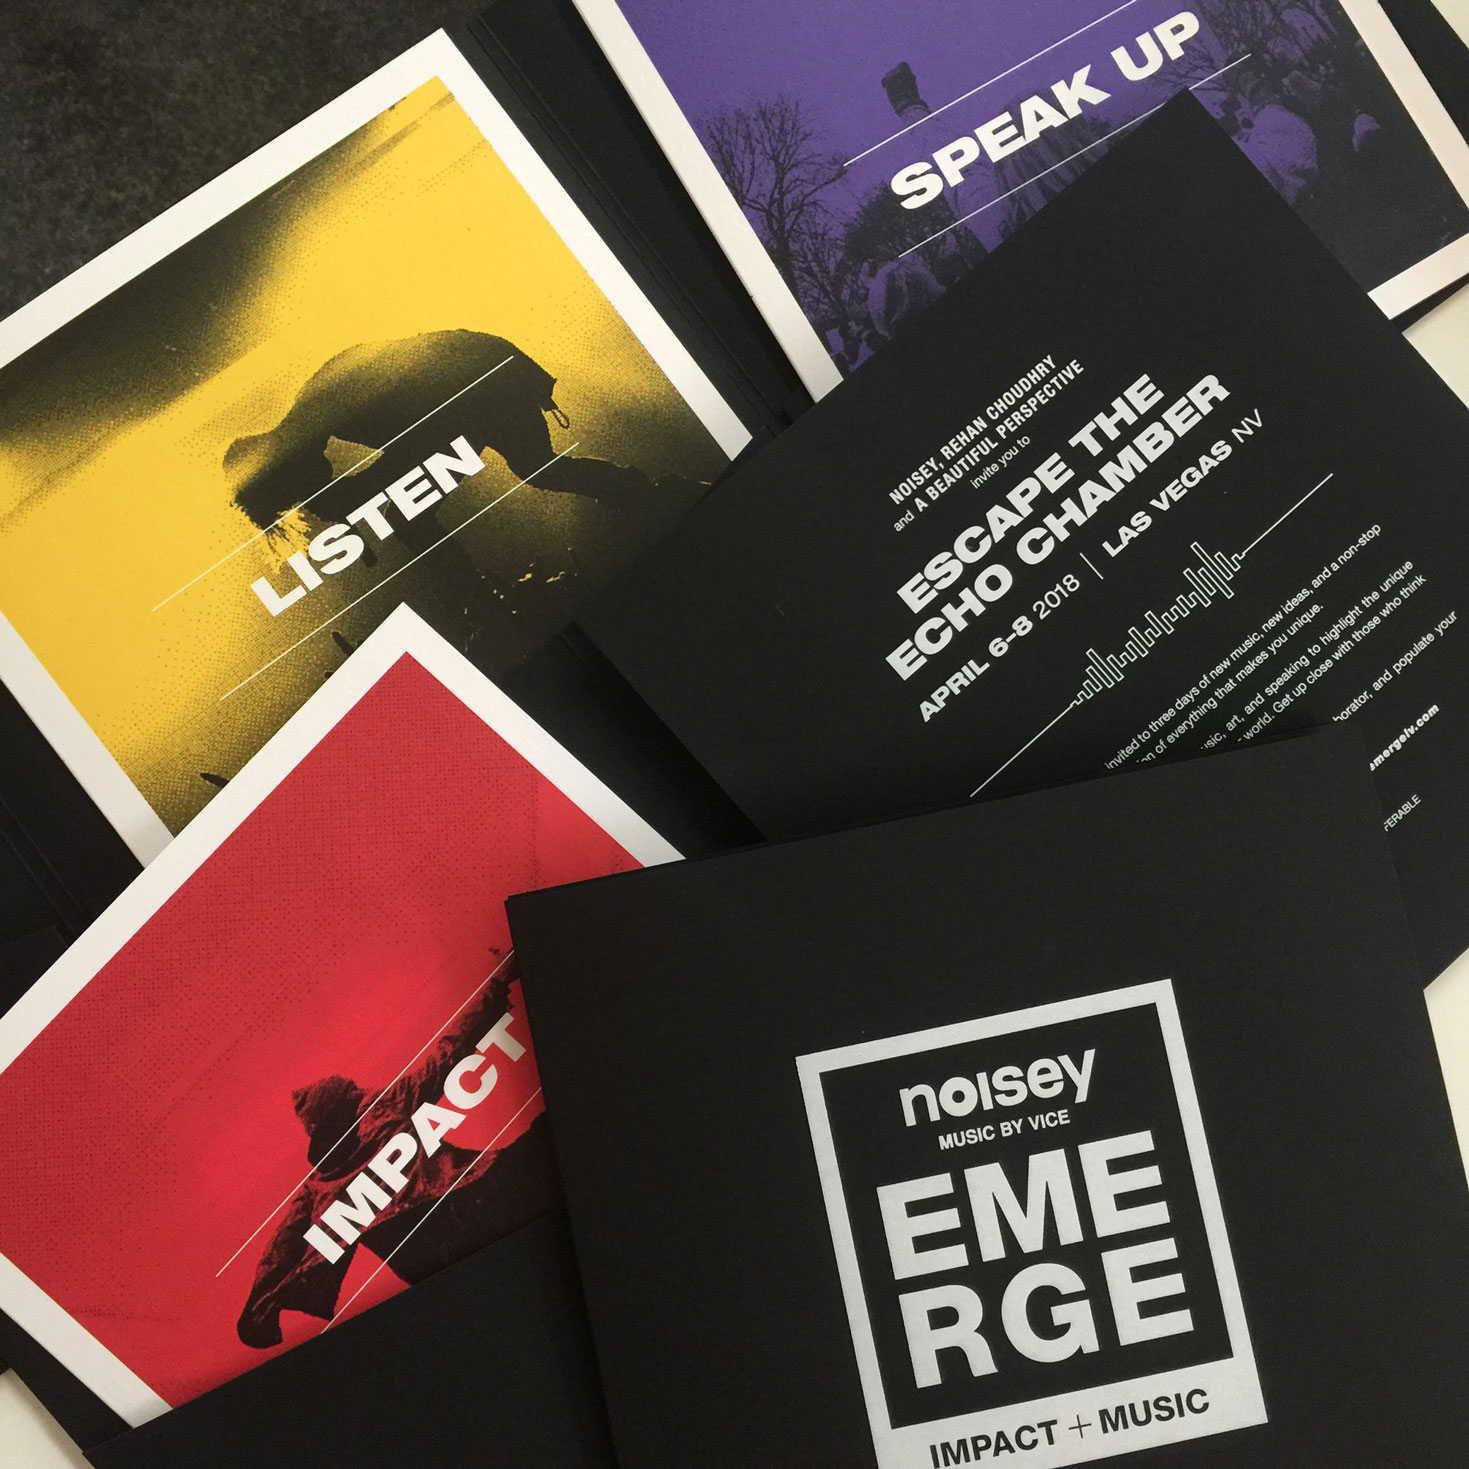 Emerge  \\ Making an impact from the start. Such an honor setting the stage for this 3-day Emerge Impact + Music celebration.